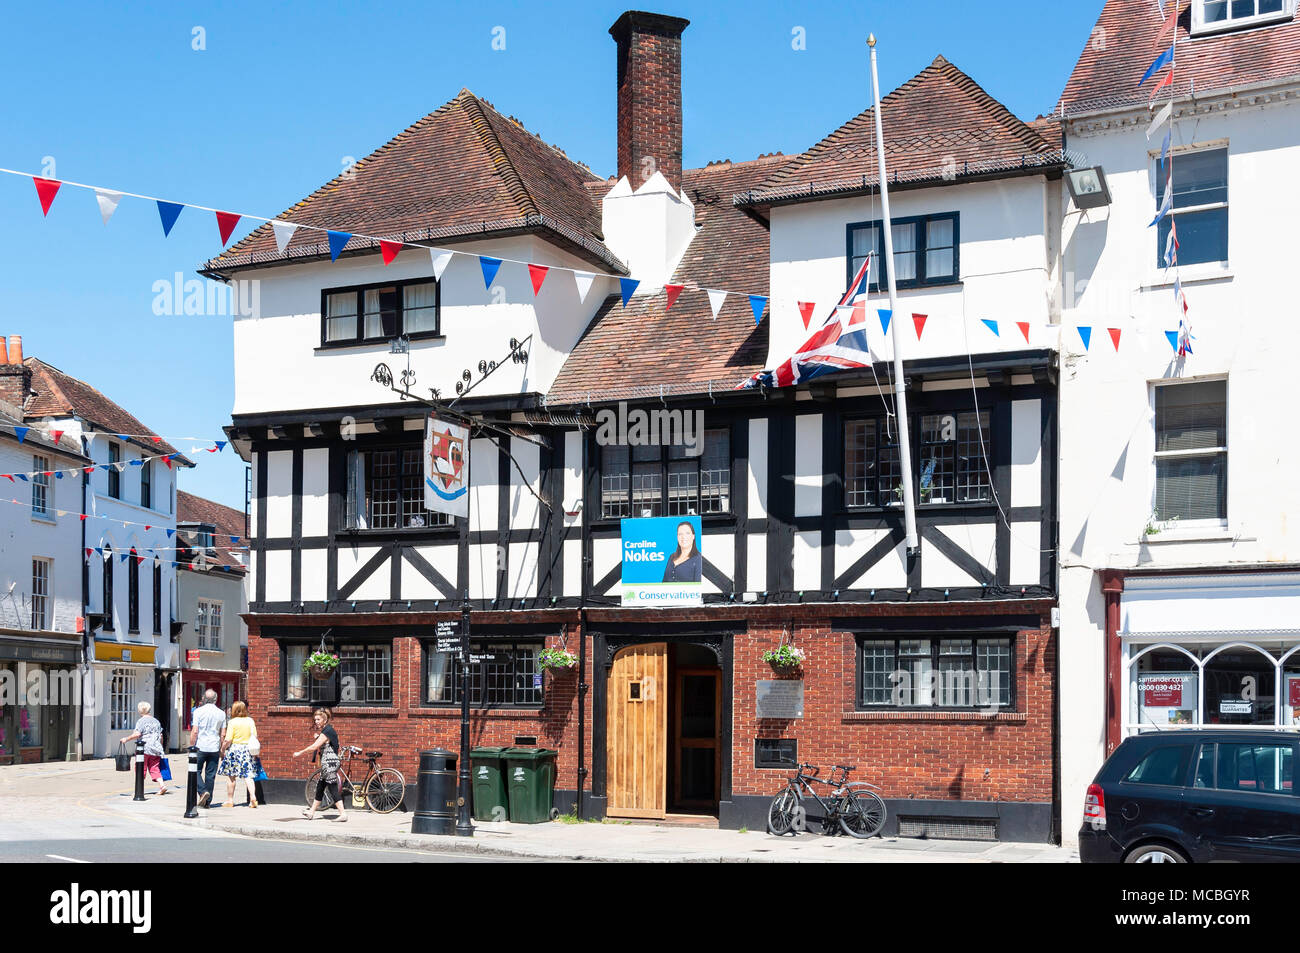 The former Old Swan Inn (now Conservative Club), Market Square, Romsey, Hampshire, England, United Kingdom - Stock Image